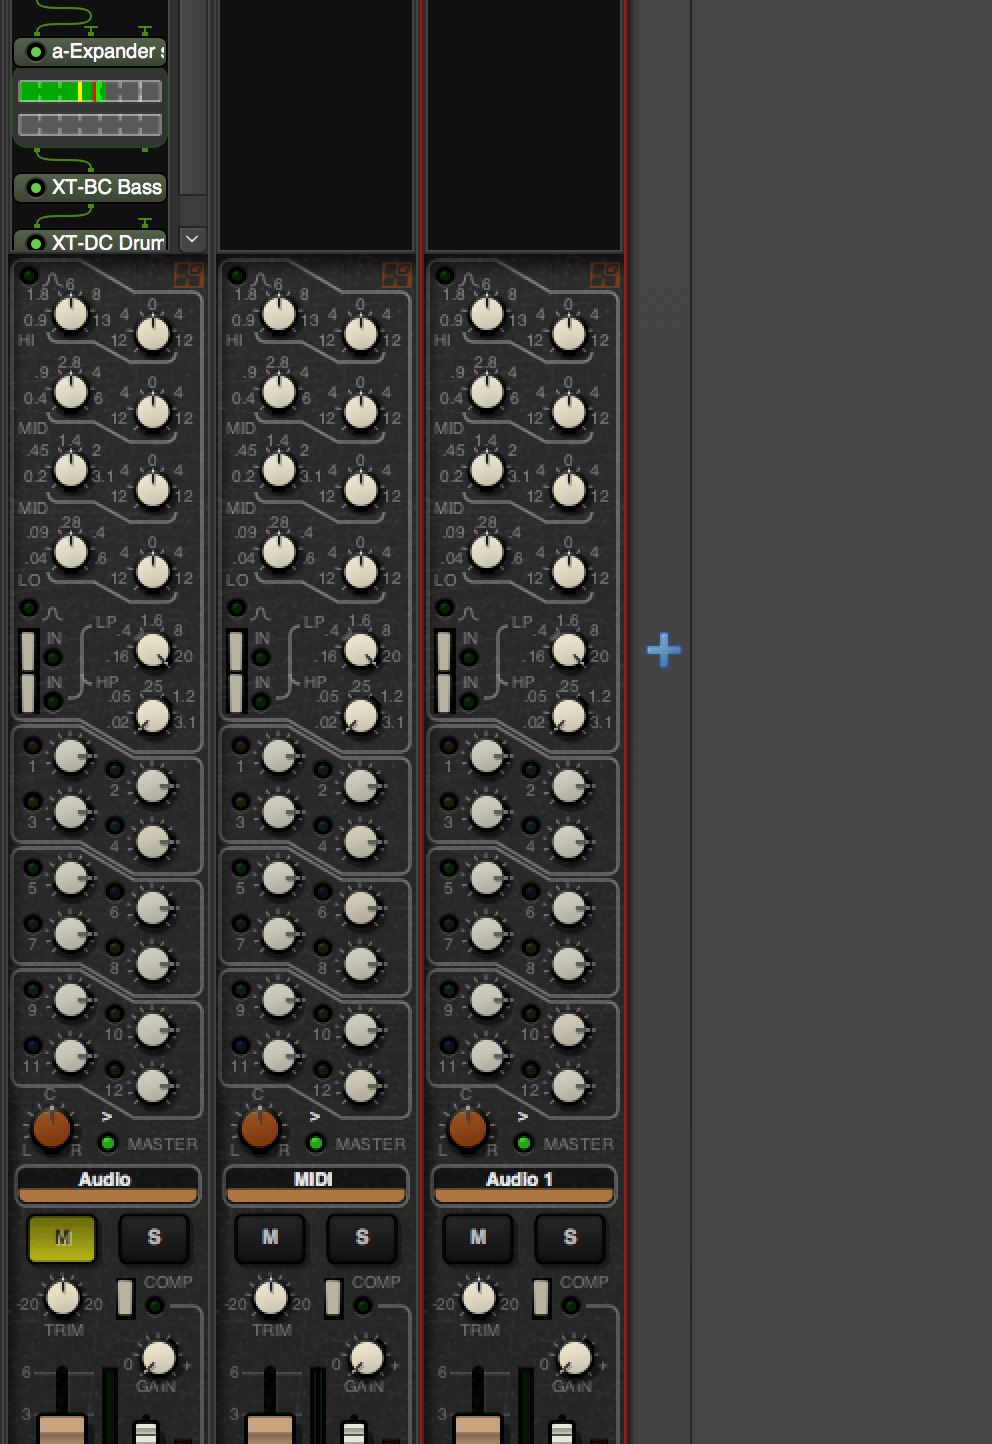 Add Track in the Mixer